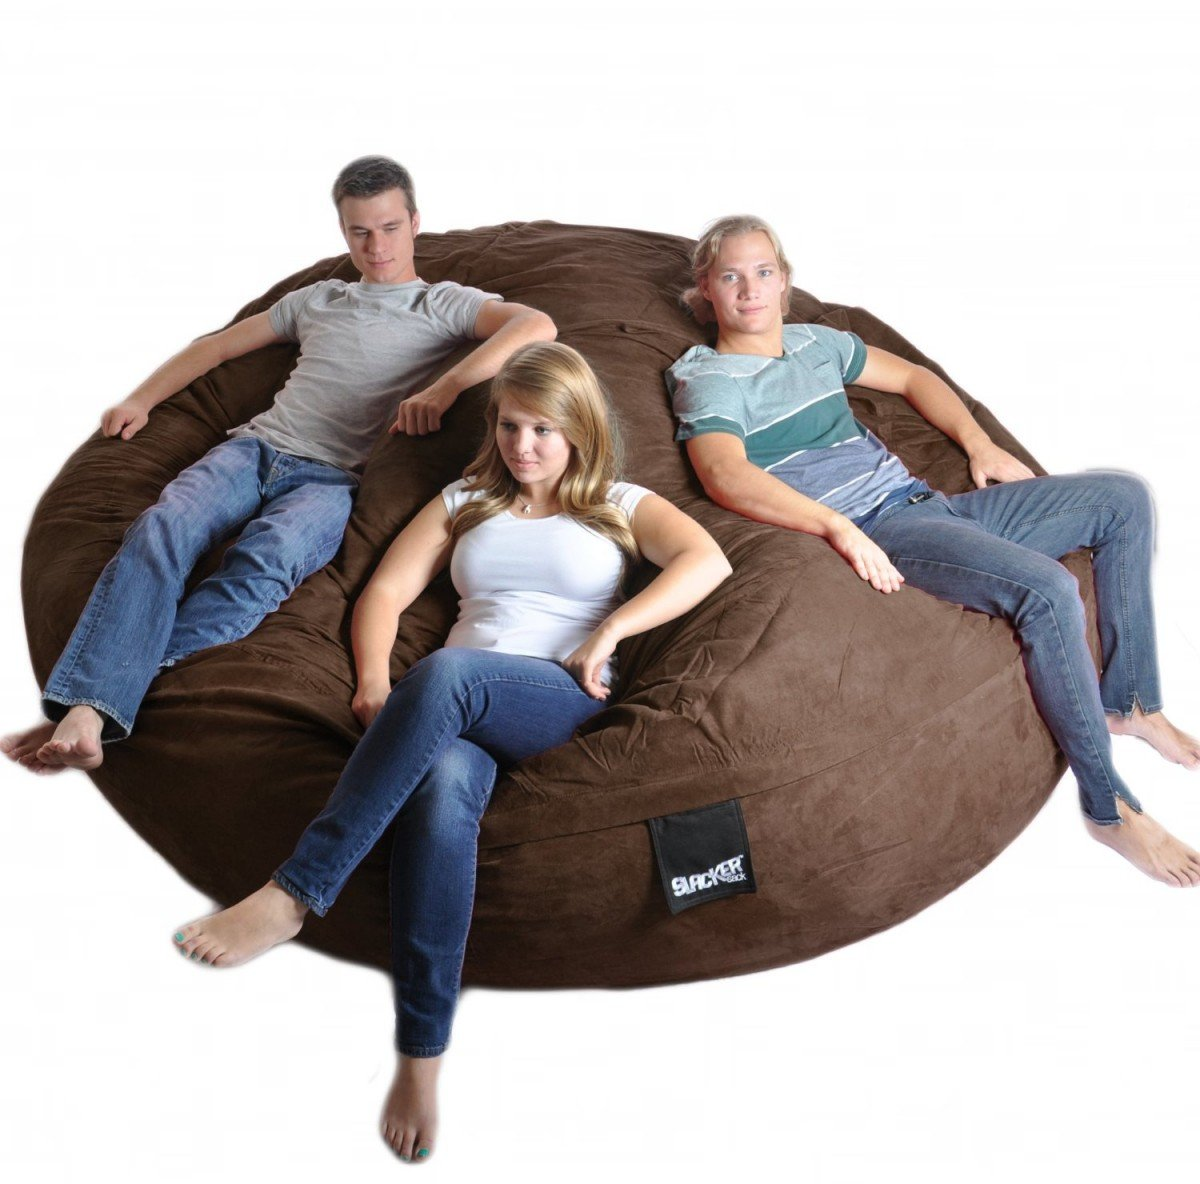 Huge Bean Bag Chairs for Adults - Home Furniture Design